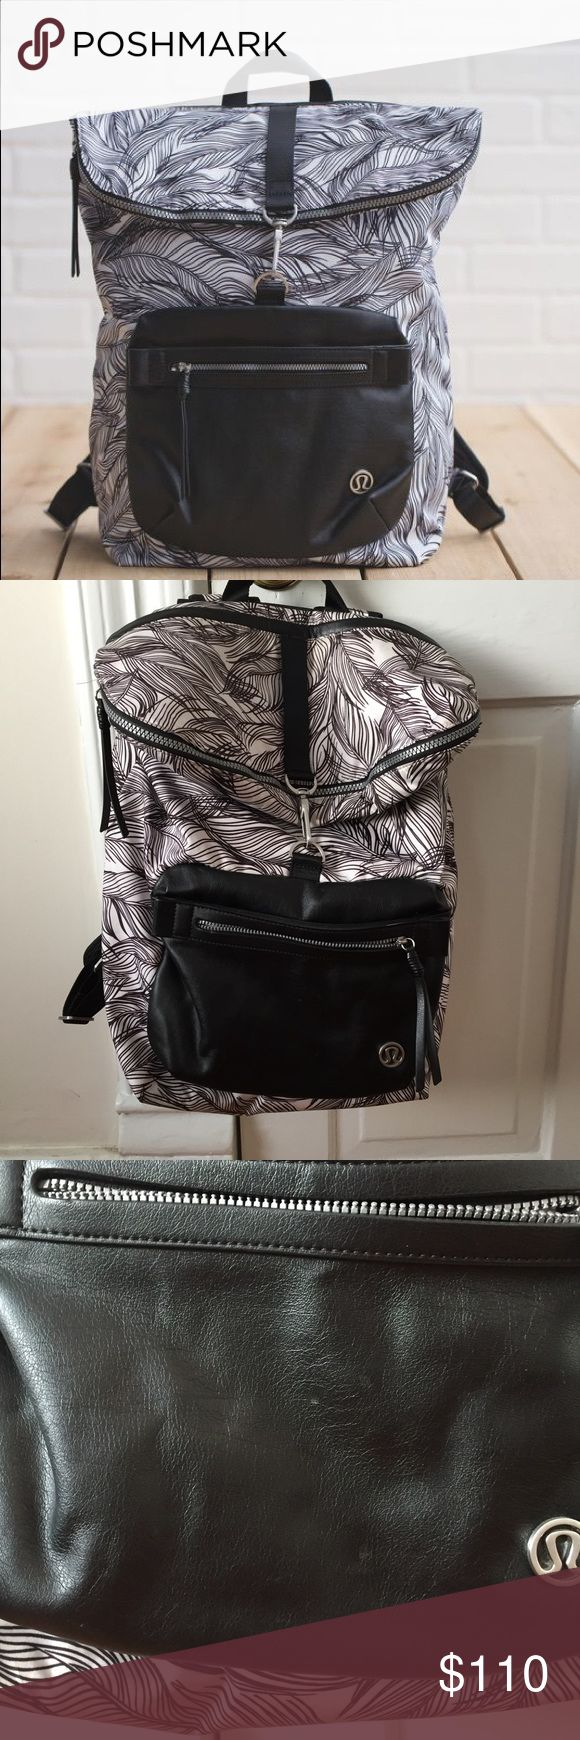 """Lululemon Kickin' It Backpack like new condition: there are 2 small spots... one inside one one front, barely noticeable. See photos I also included photos of the inside so you can see that it's in excellent condition.  There's a padded laptop pocket that fits up to a 15"""" laptop, and a pocket inside for a water bottle (see pictures). There's also a smaller pocket for accessories and a pocket for """"sweaty wet unmentionables"""" pocket.    💜 no offers because it's discontinued & hard to find. 💰…"""